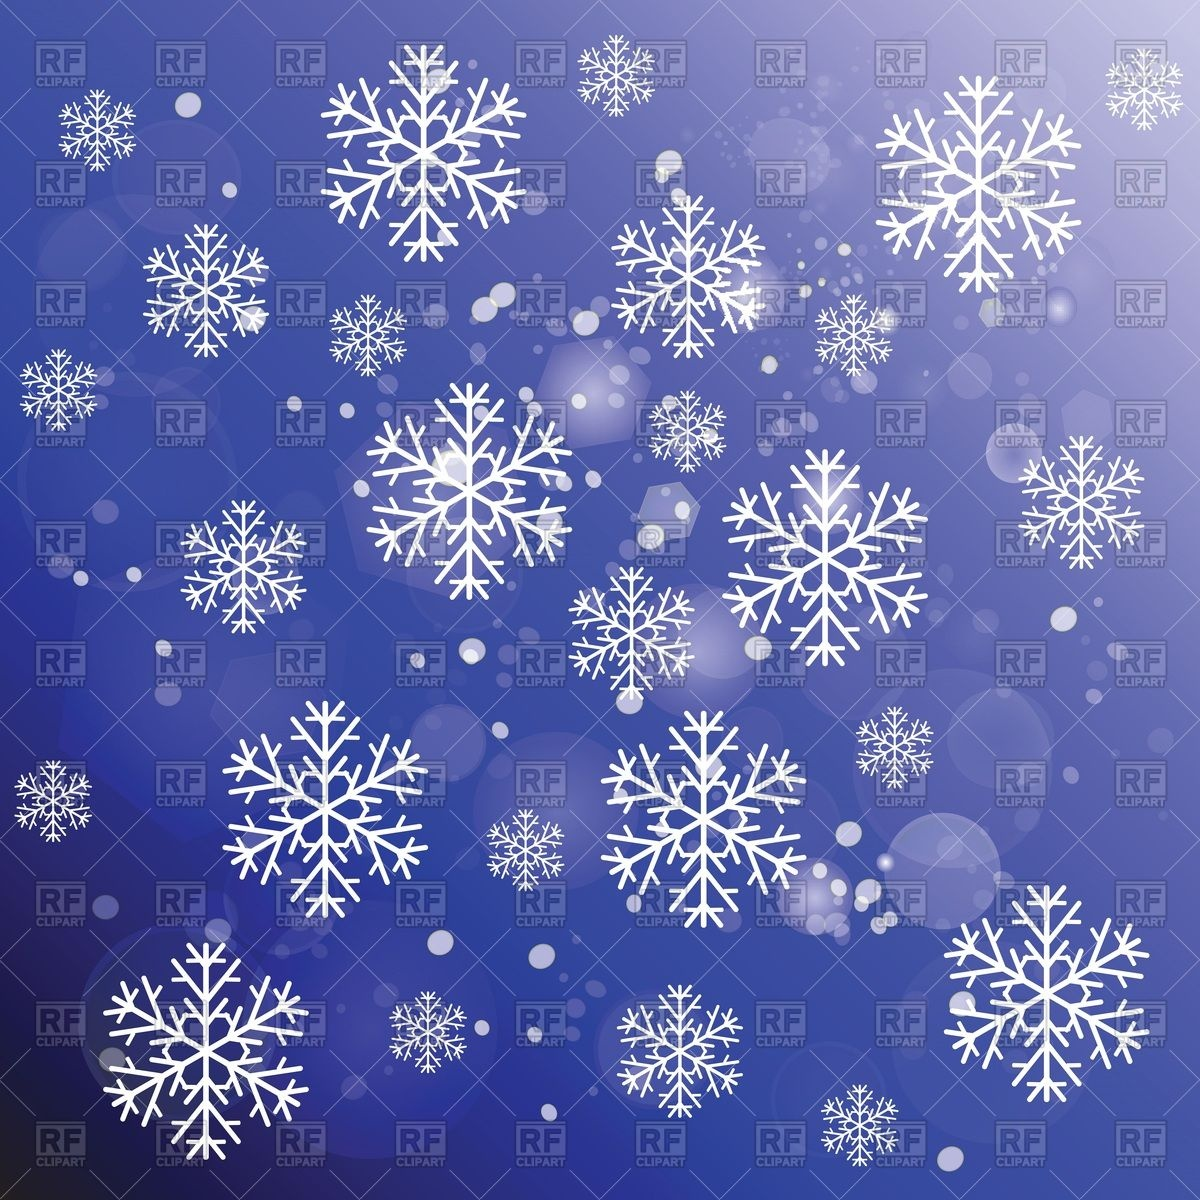 Free Winter Cliparts Background, Download Free Clip Art, Free Clip.